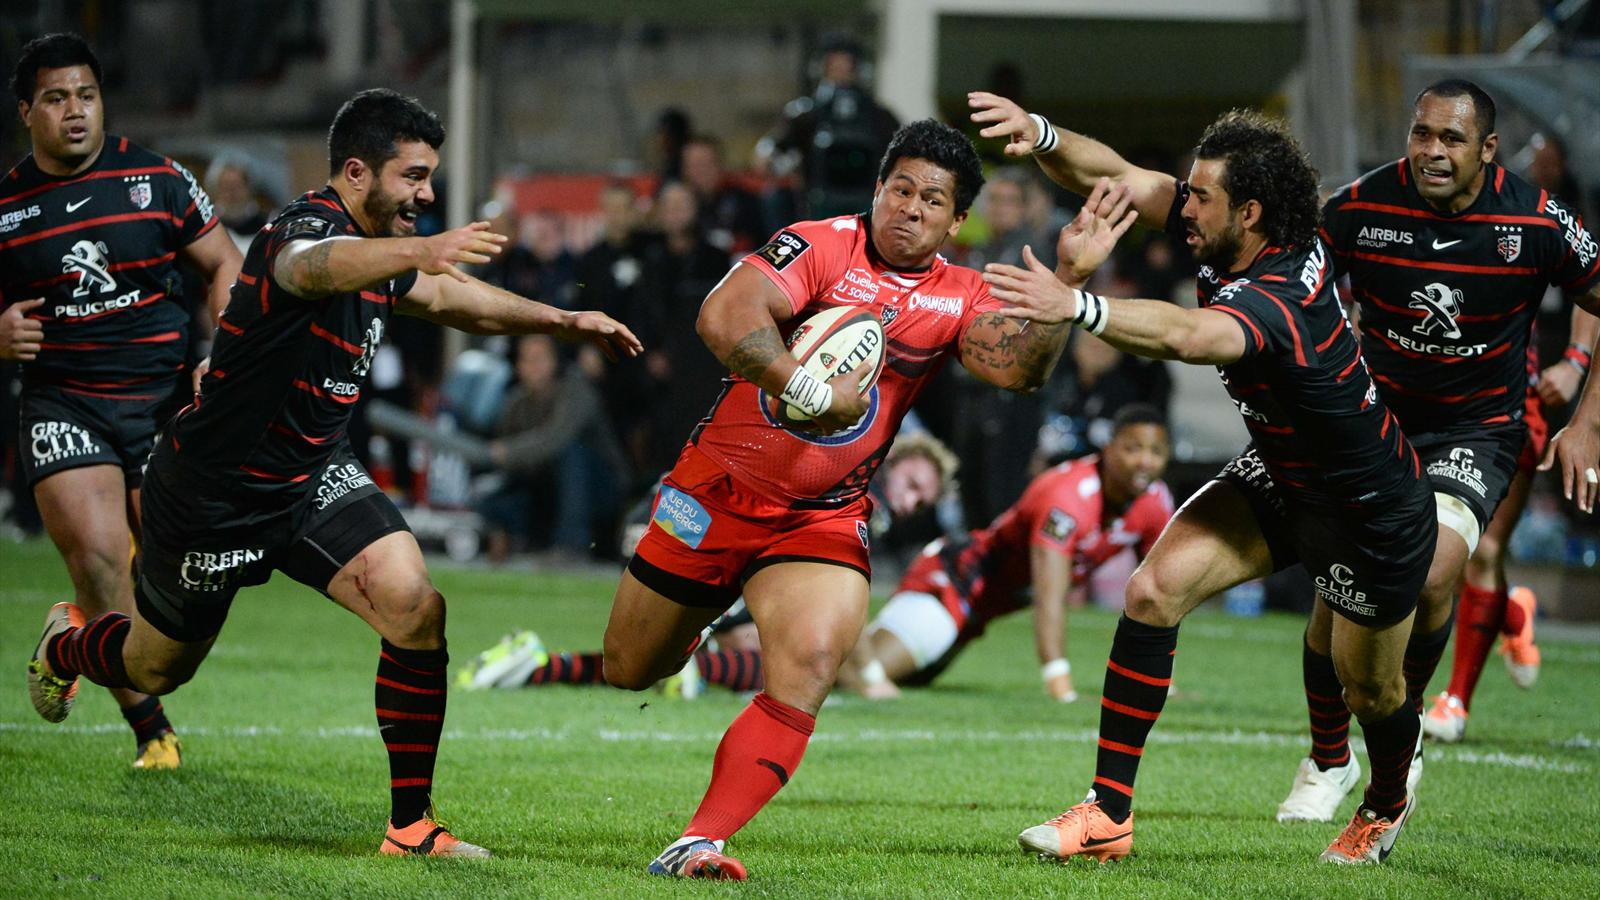 David Smith - Toulon Toulouse - 29 mars 2014